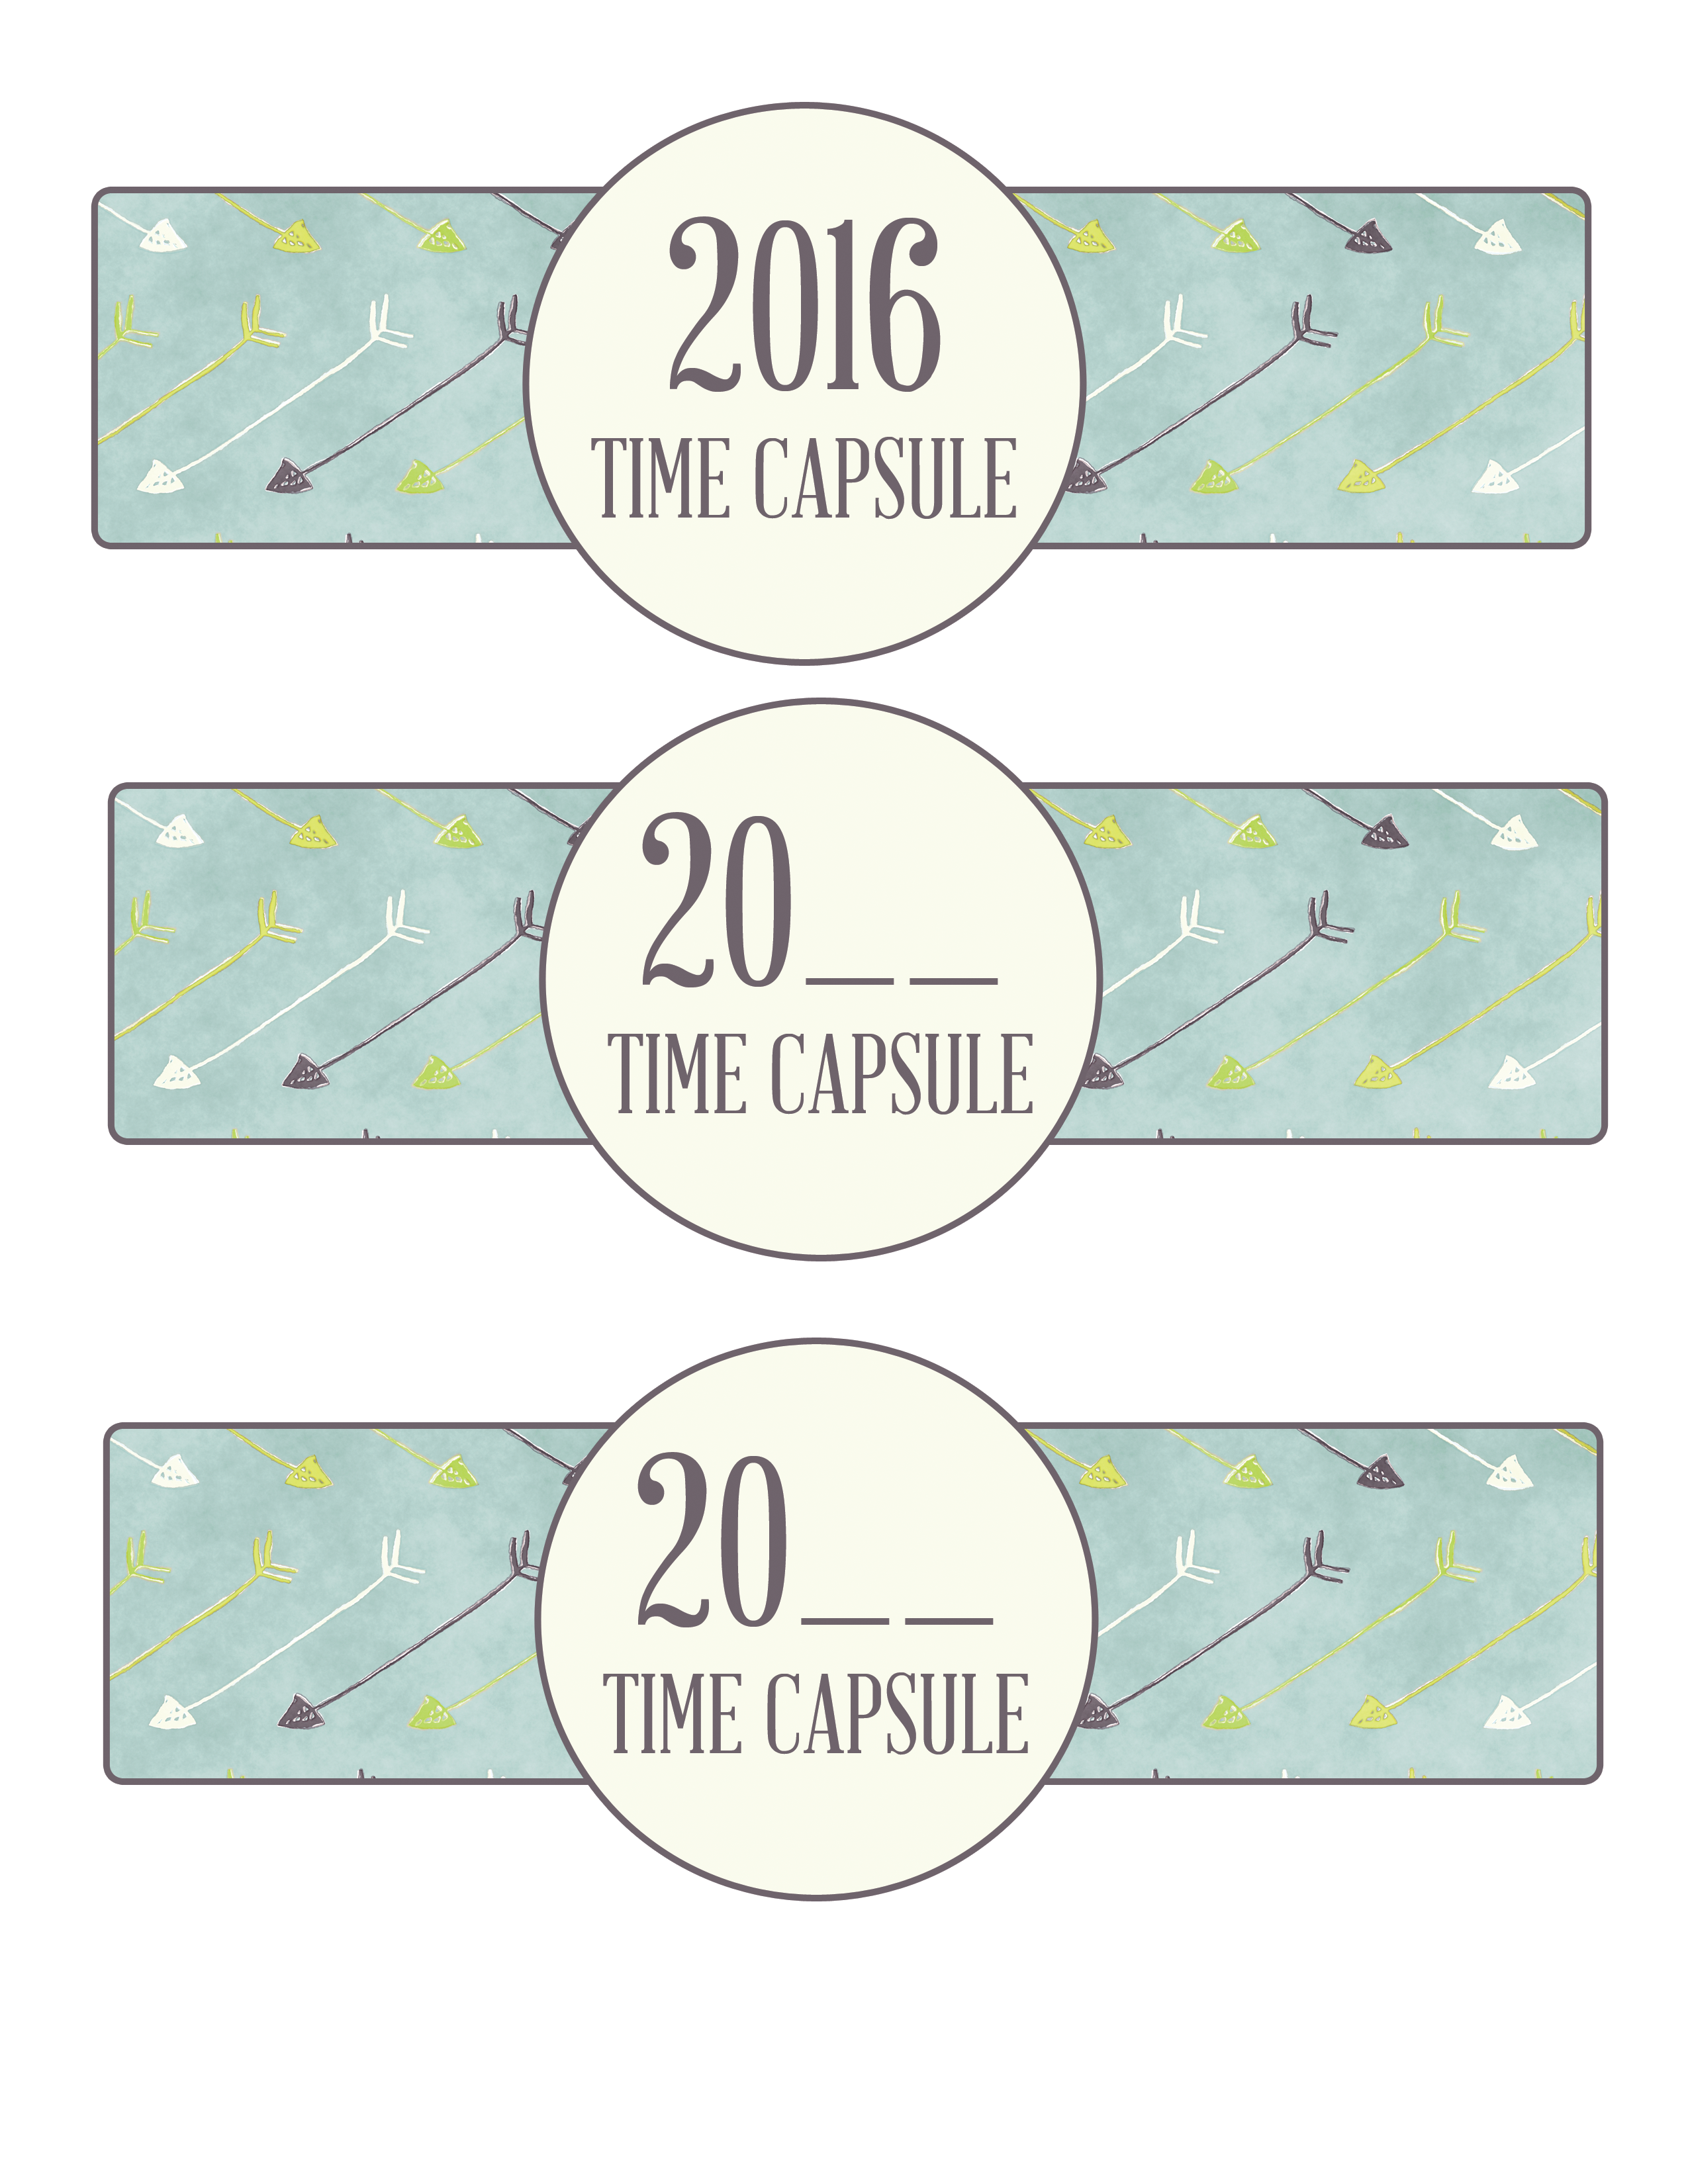 photograph regarding Time Capsule Printable referred to as 2016 Cost-free Season Capsule Printable + Reflection upon 2016